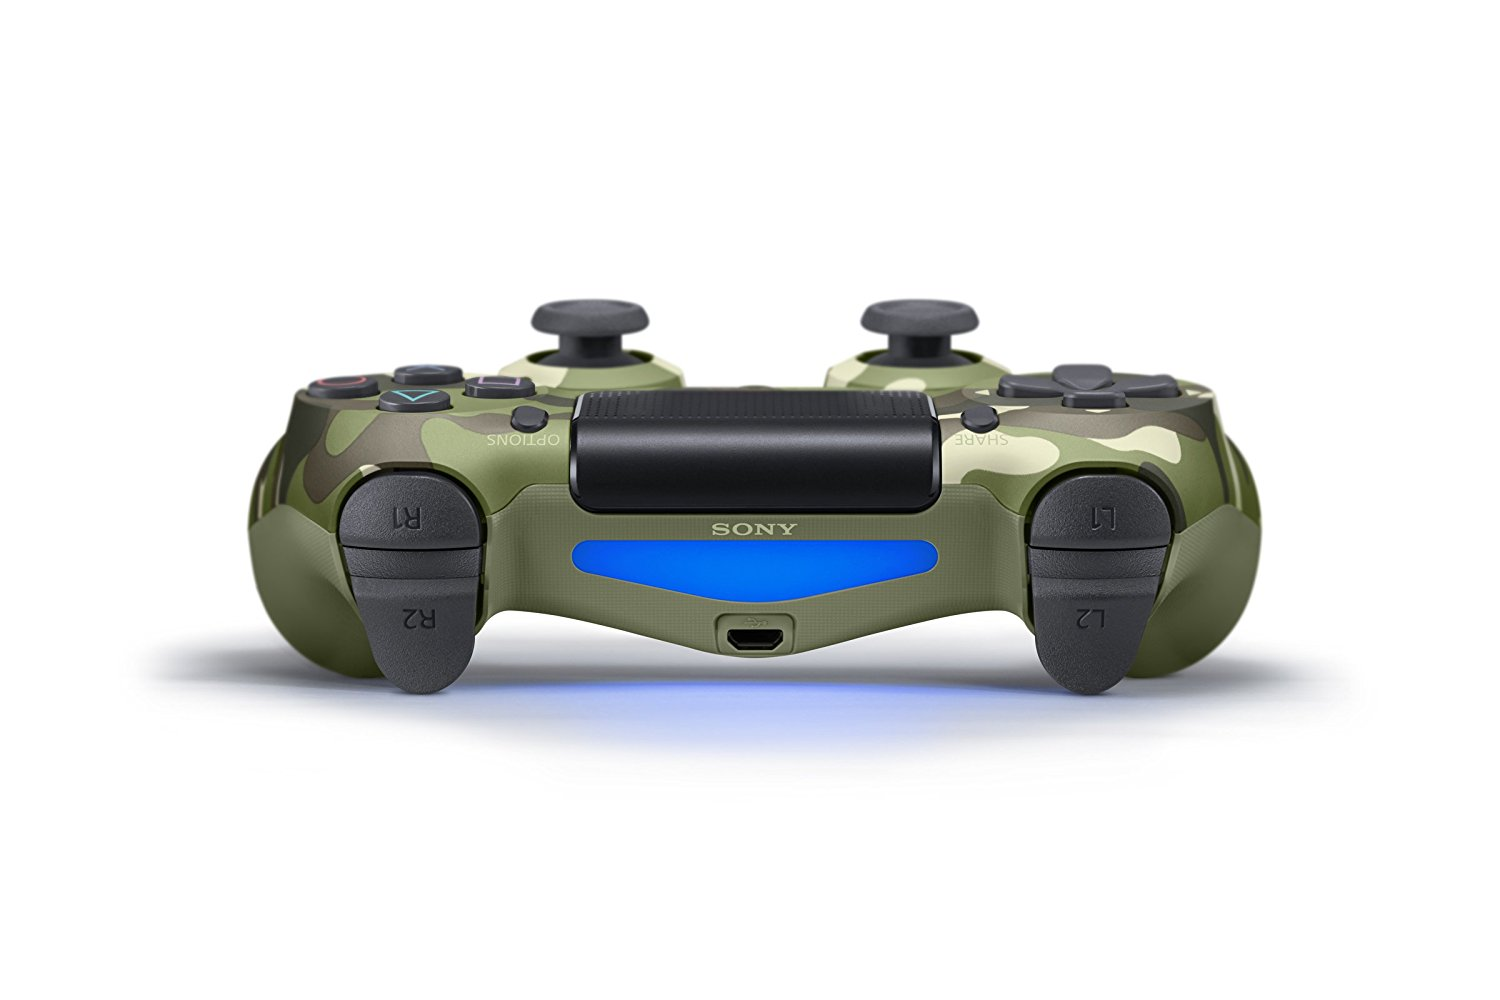 DualShock-4-Wireless-Controller-for-PlayStation-4-Green-Camouflage-3